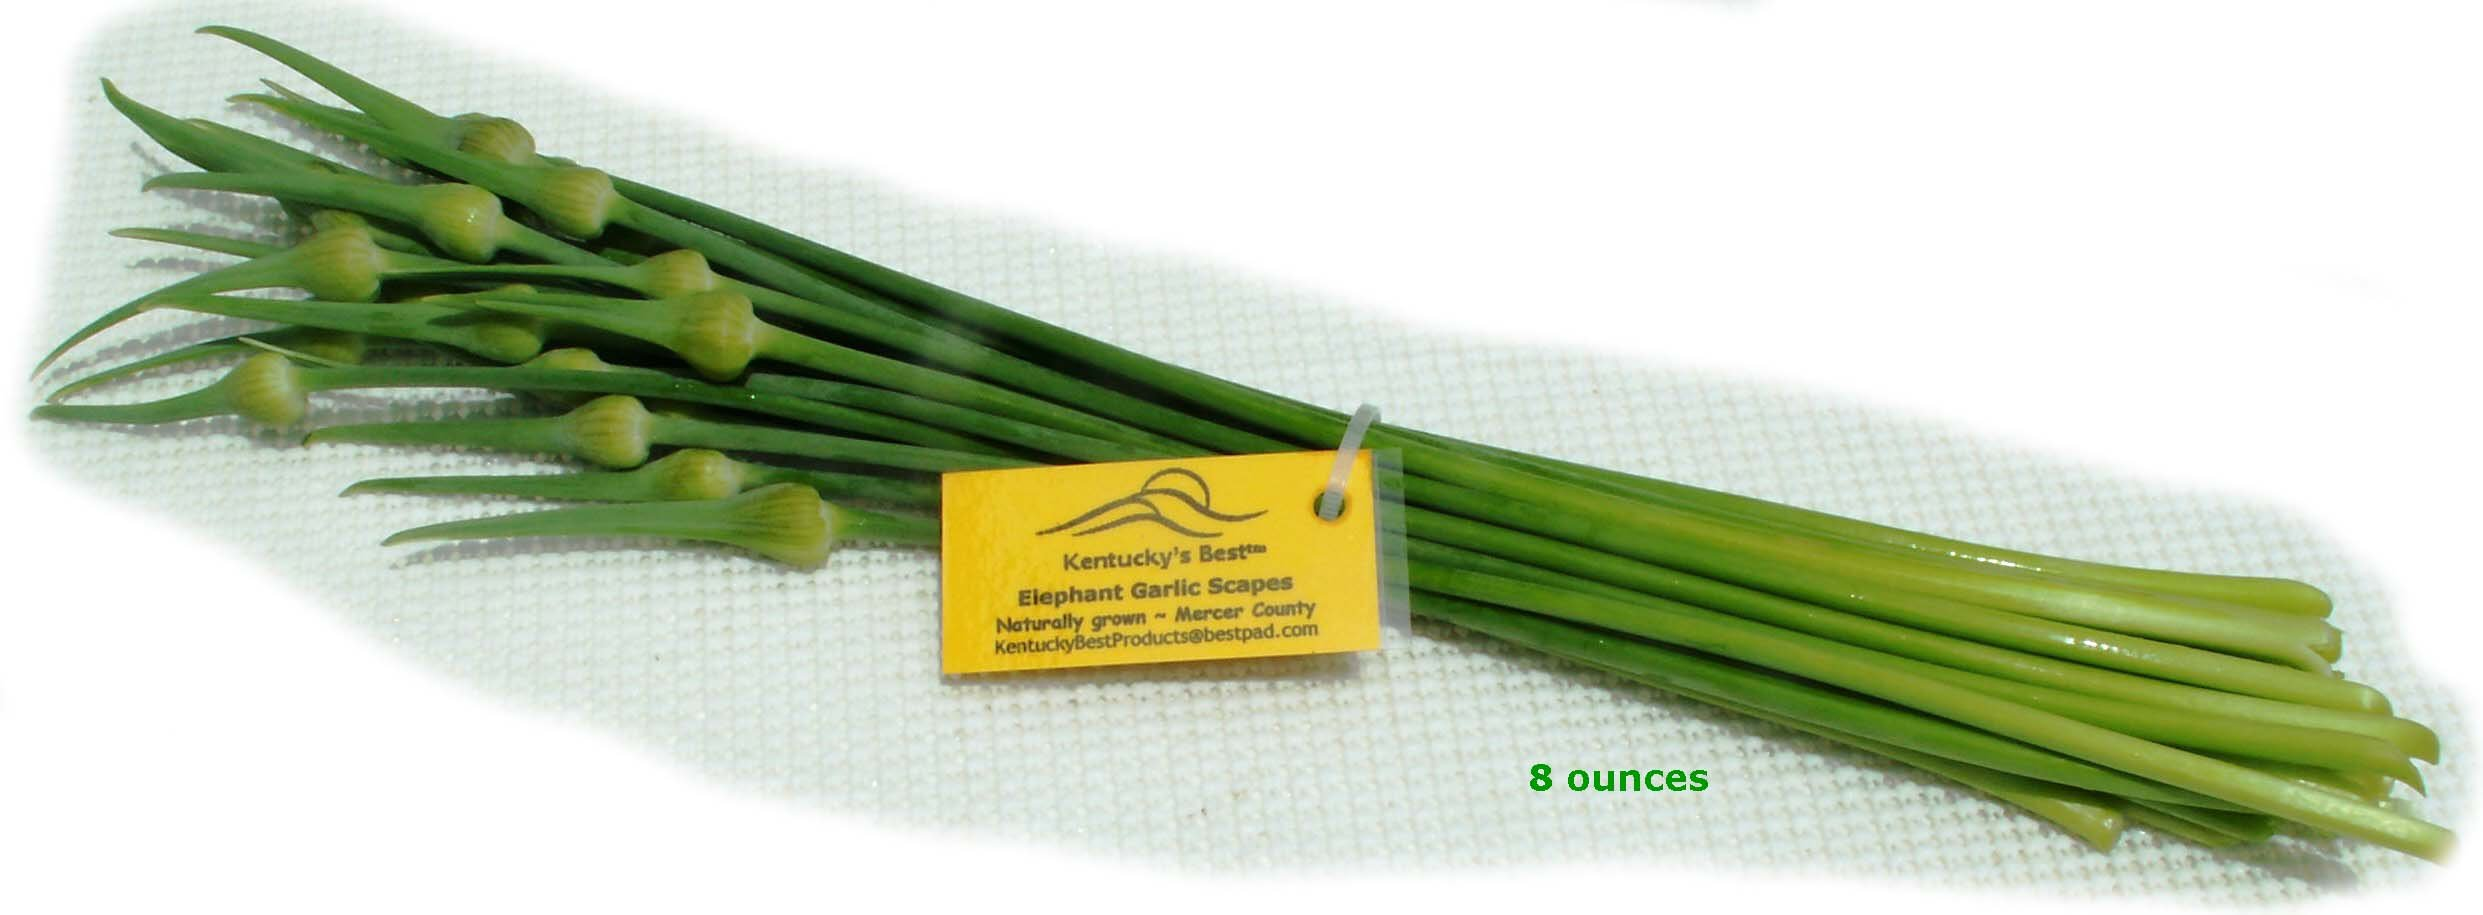 Kentucky's Best Gourmet Elephant Garlic Scapes, 8 Ounces Raw or Cooked, Non-GMO, All Natural